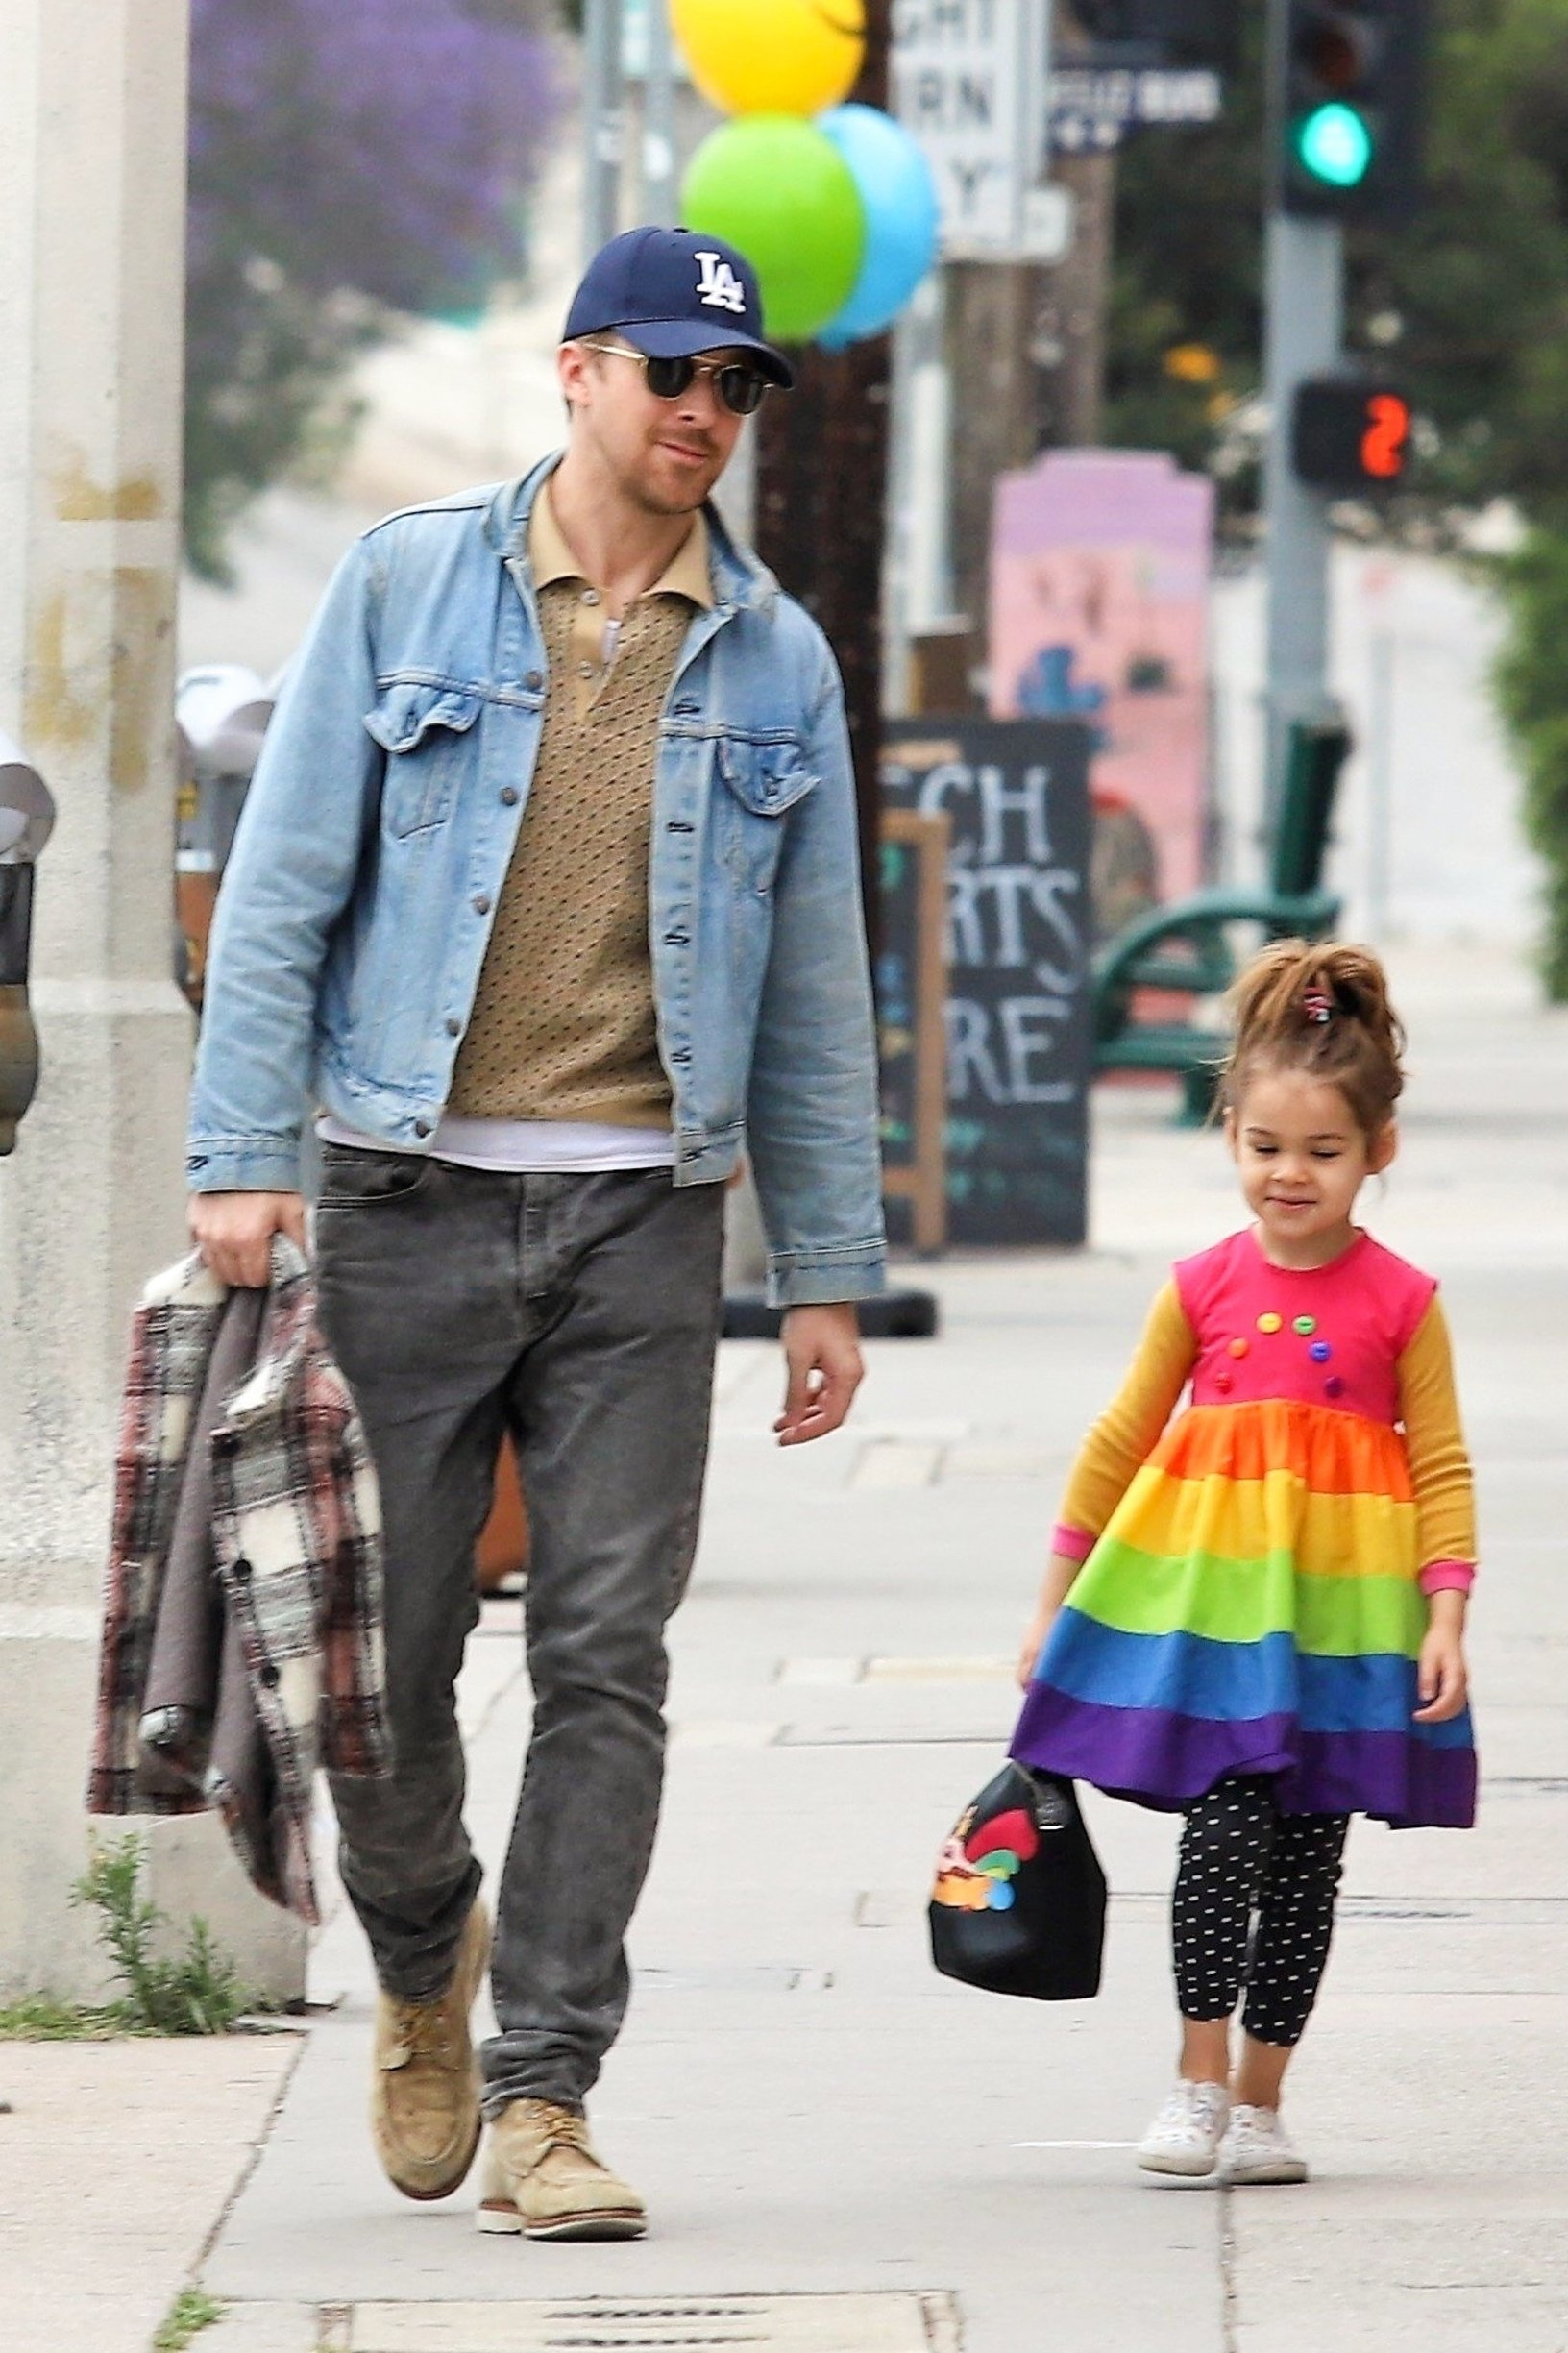 Los Angeles, CA  - *EXCLUSIVE*  - Actor Ryan Gosling takes a stroll with his little one Esmeralda Gosling. The little bundle of sunshine dons a cute rainbow striped dress with polka dotted pants. Ryan keeps things casual in a light blue denim jacket and faded black pants.  Pictured: Ryan Gosling    *UK Clients - Pictures Containing Children Please Pixelate Face Prior To Publication*, Image: 432921251, License: Rights-managed, Restrictions: , Model Release: no, Credit line: Profimedia, Backgrid USA